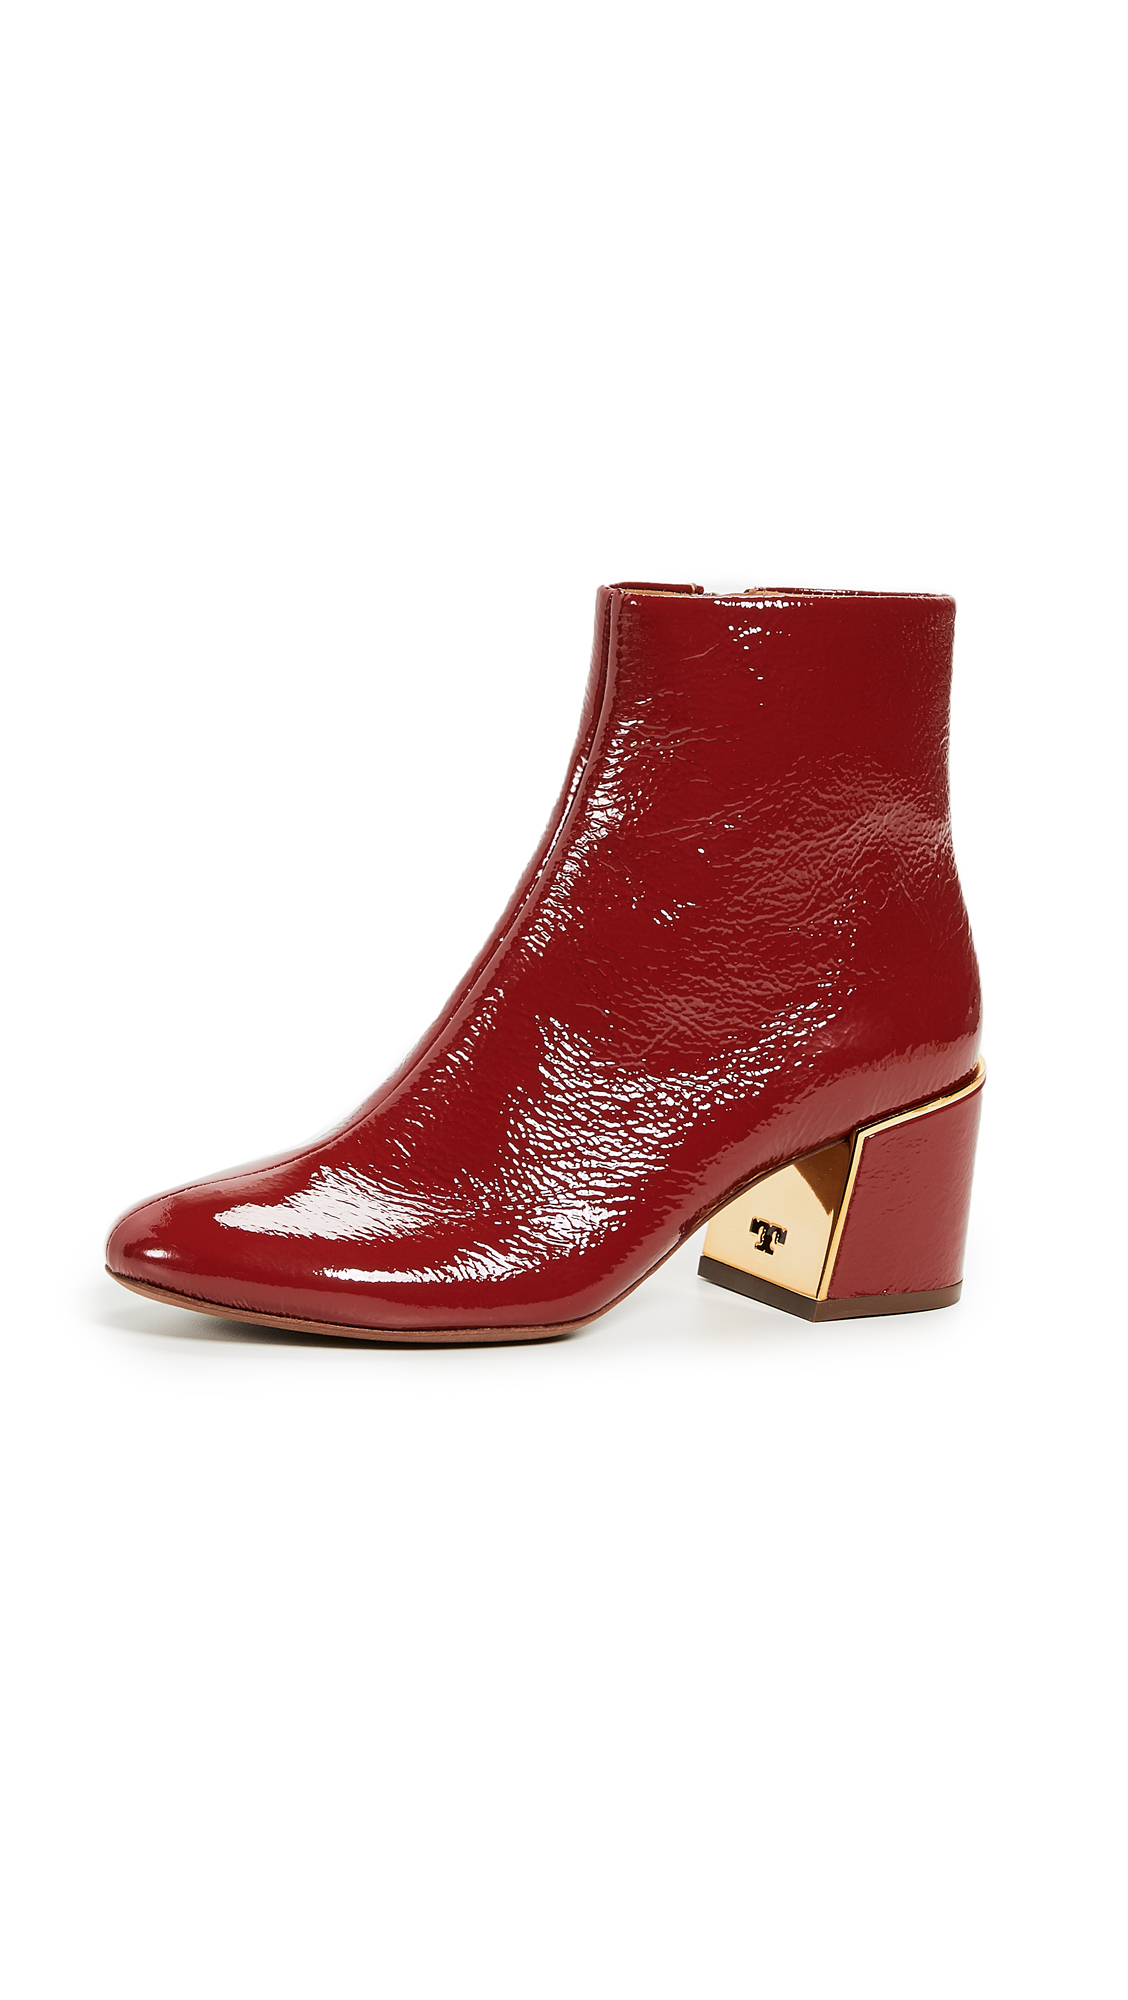 Tory Burch Juliana Booties - Dark Redstone